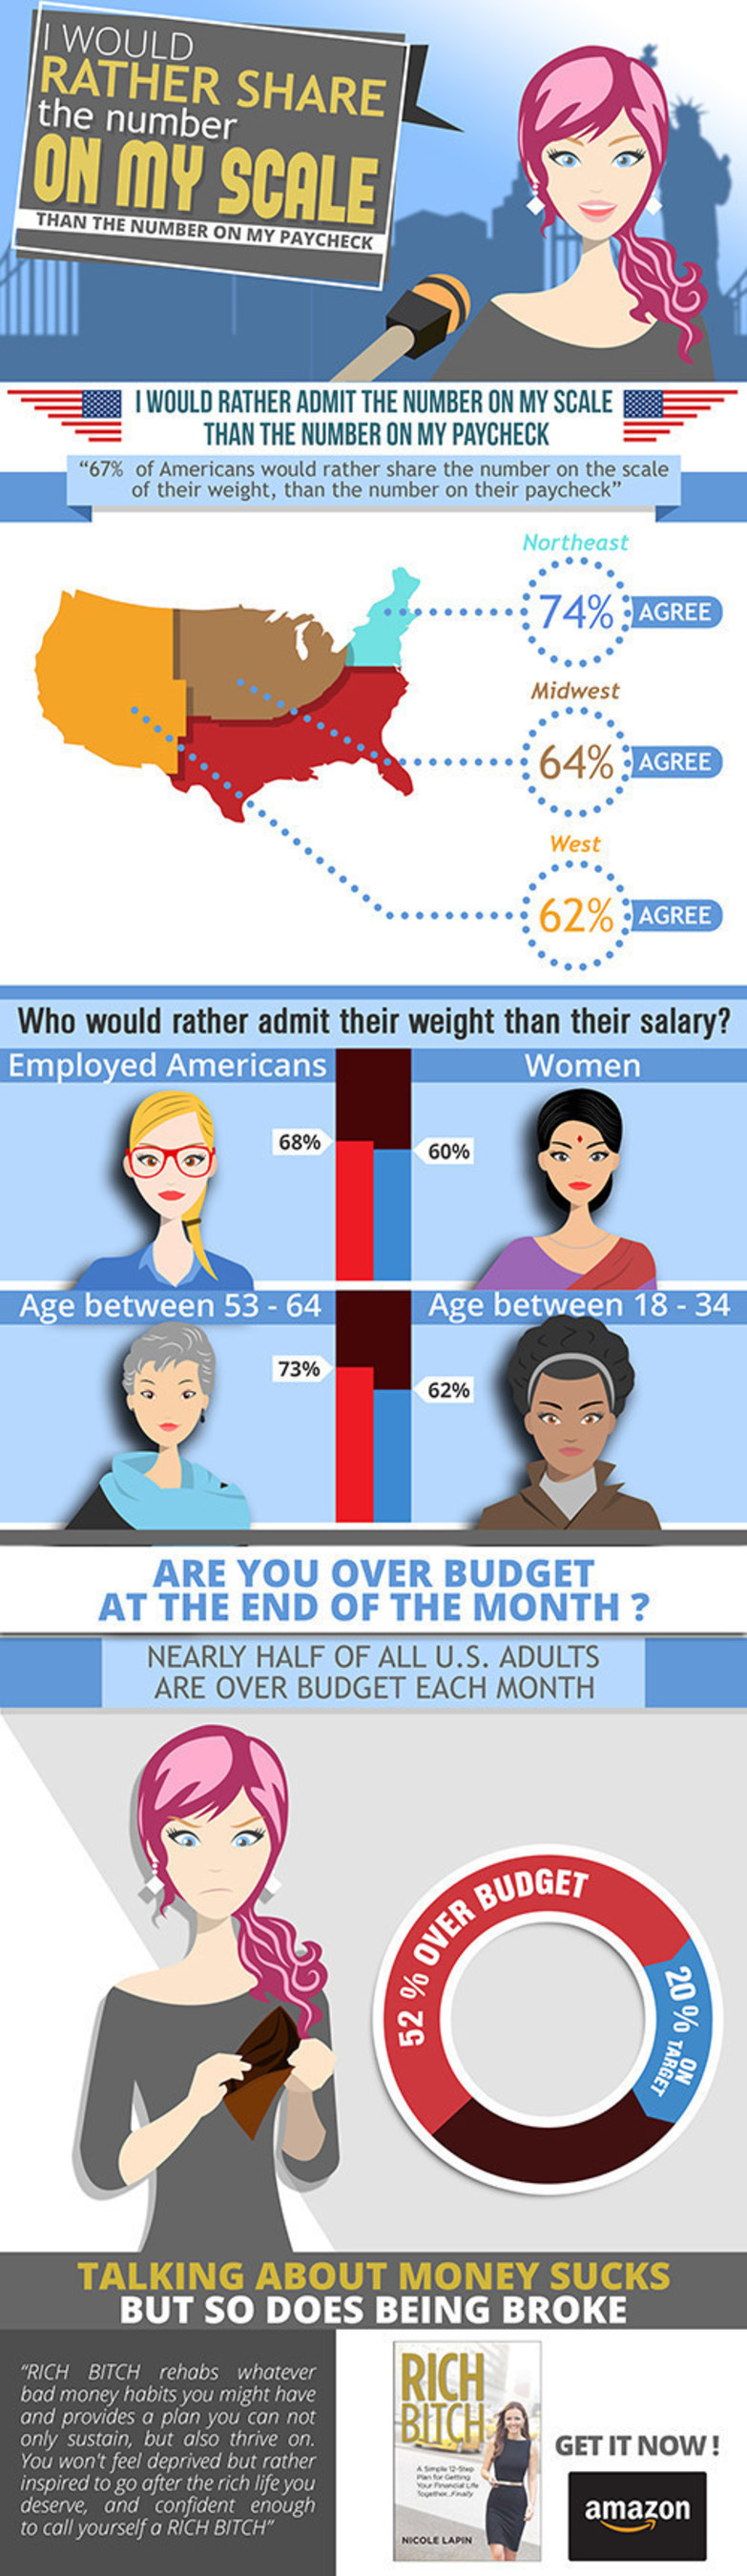 Infographic based on Nicole Lapin's financial survey in partnership with Nielsen. The survey was conducted between Dec 1-3, 2014 and polled the general population.